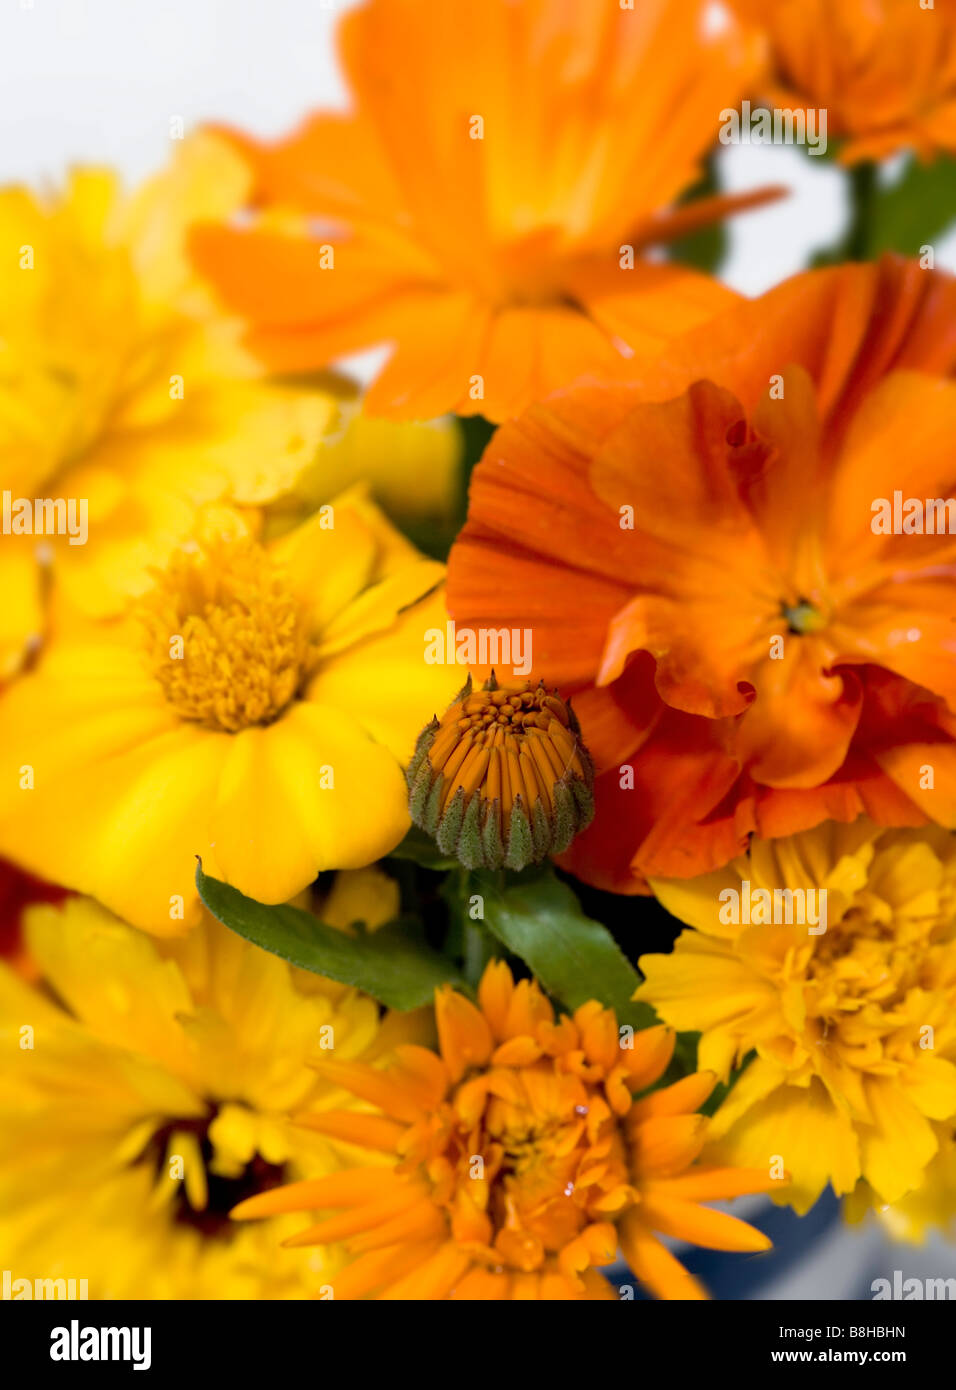 Close up shot of Marigolds and California Poppies against a white background - Stock Image